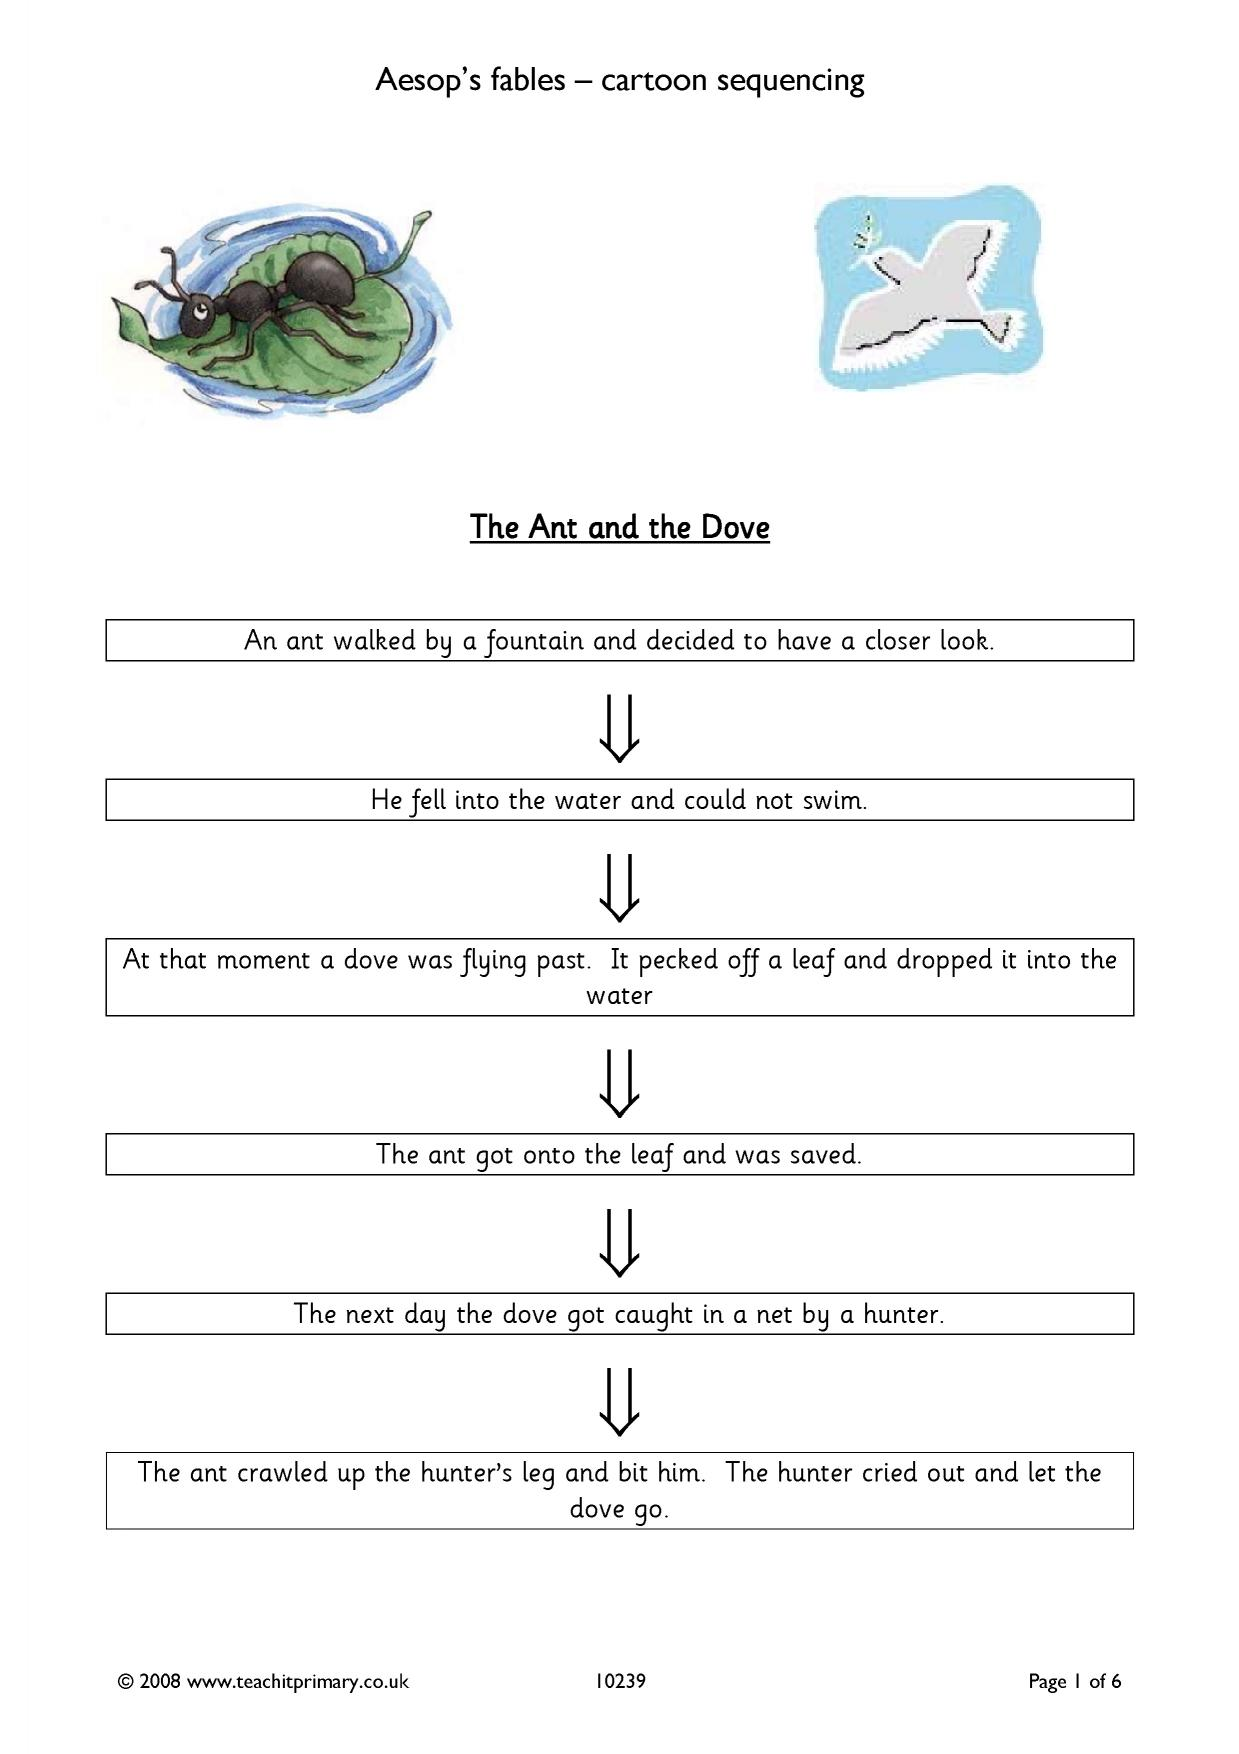 Worksheet Unpacking Fables Answer Key